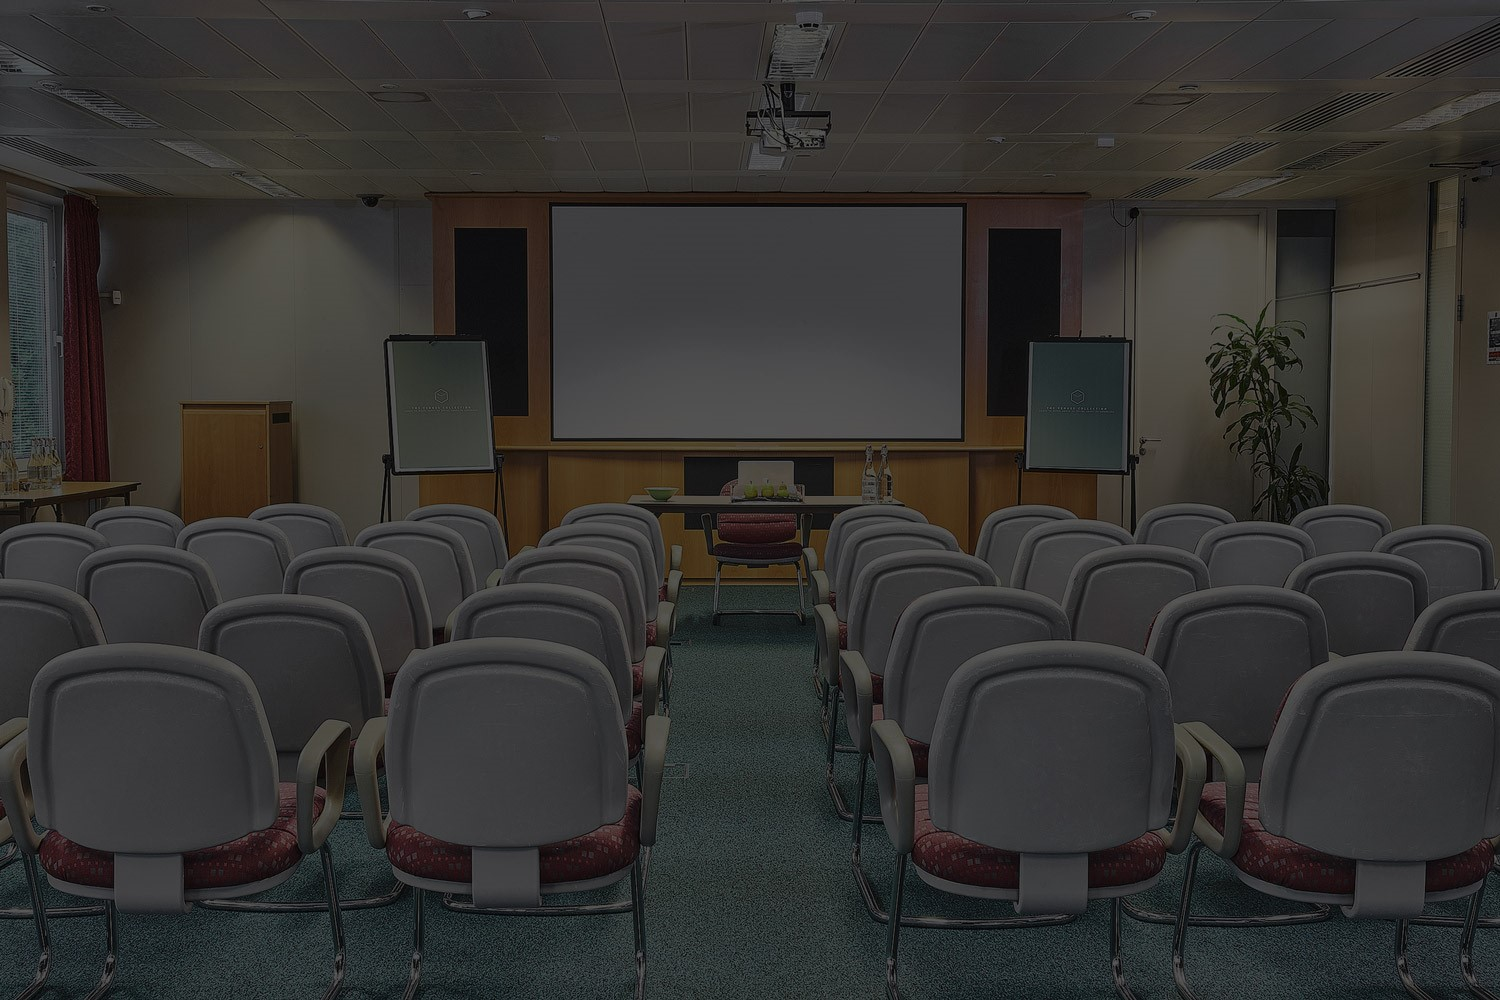 Kents Hill training and conference venue in Milton Keynes